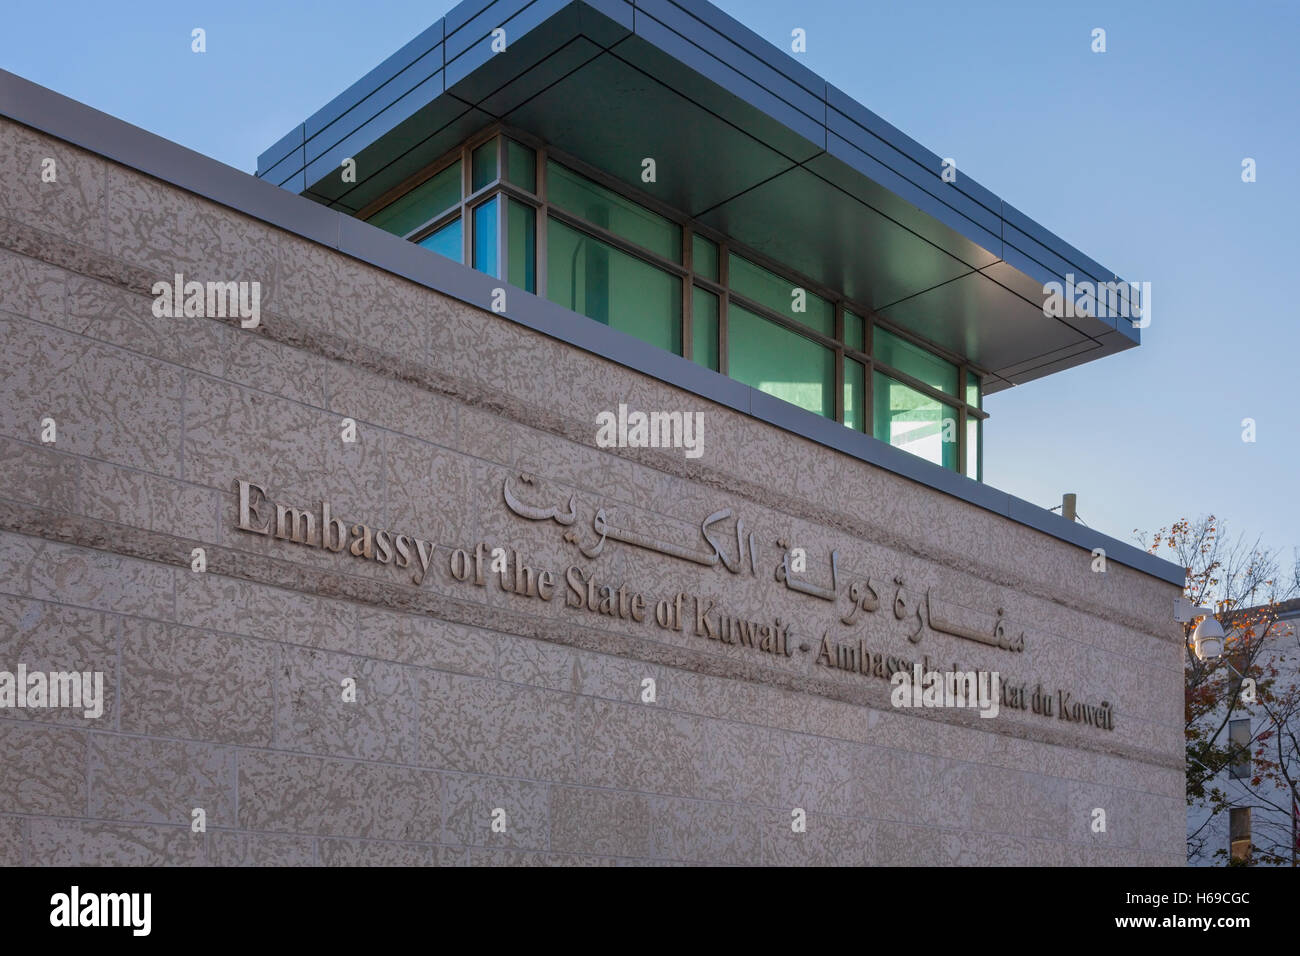 The Embassy of the State of Kuwait. Ottawa, Ontario, Canada. - Stock Image